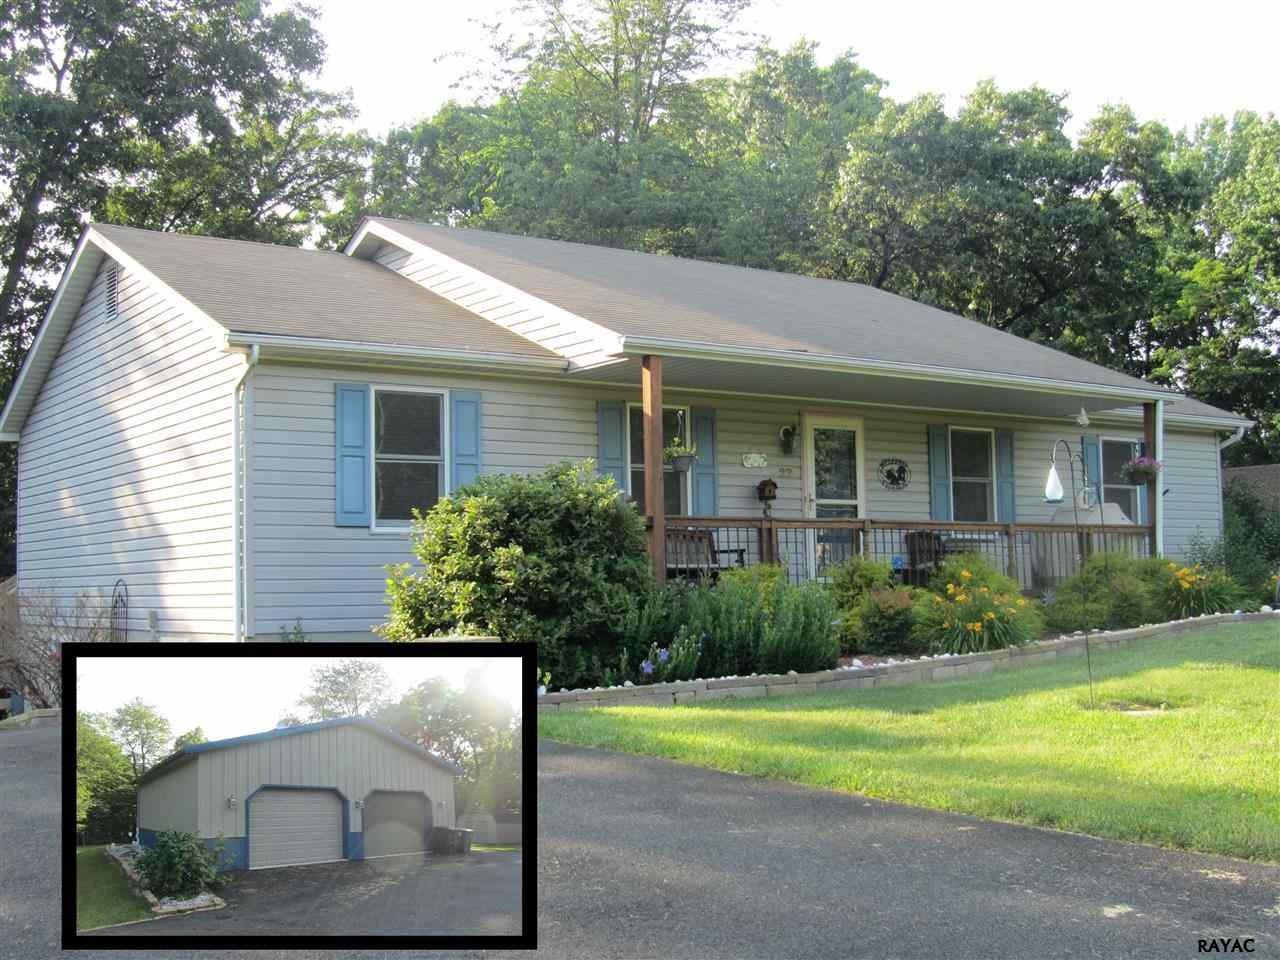 22 Polly Trl, Fairfield, PA 17320